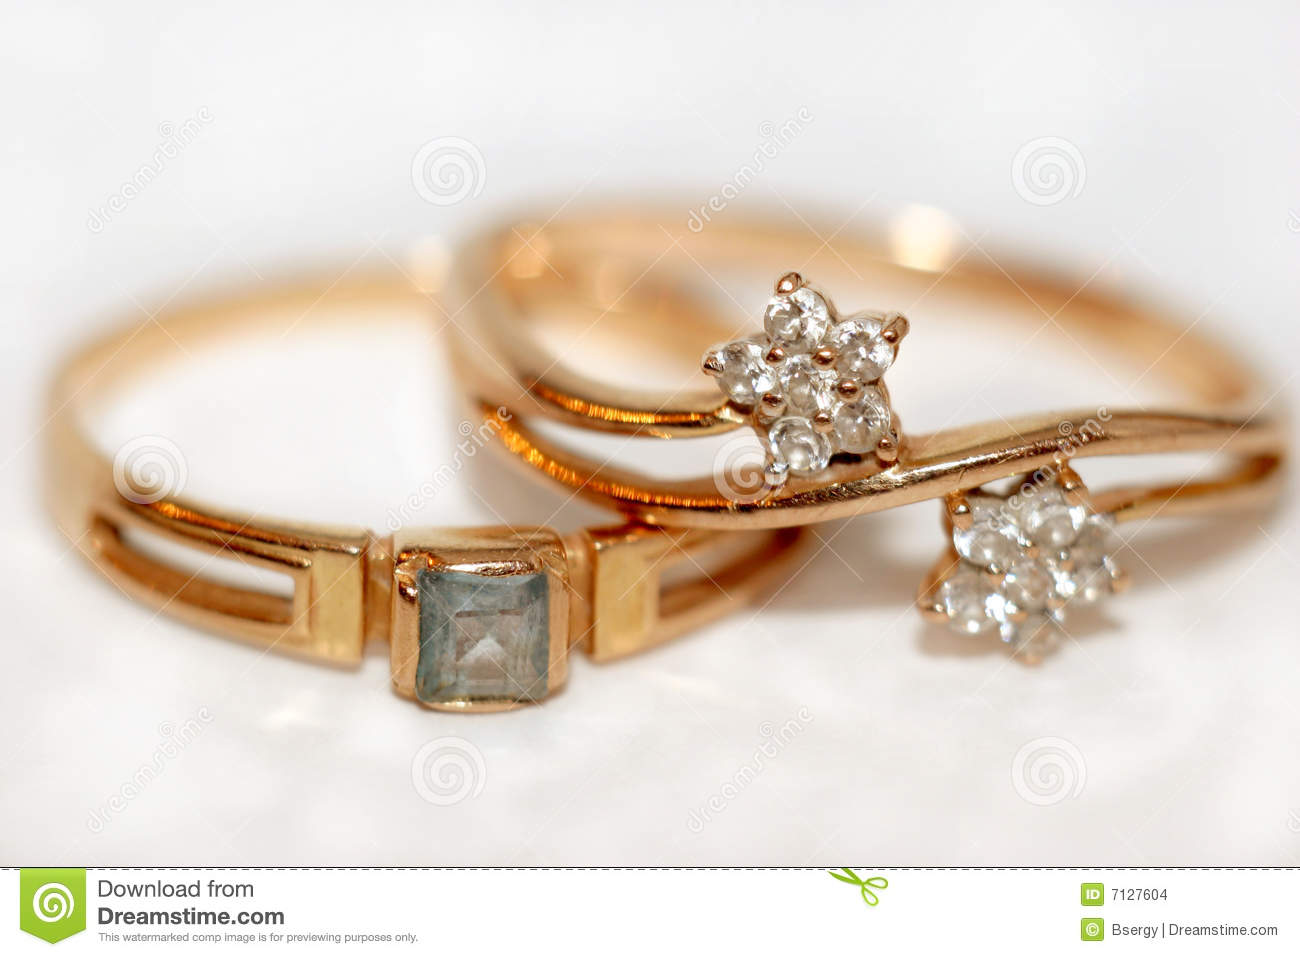 Golden Rings On The Sheet Music Stock Image - Image: 33002039